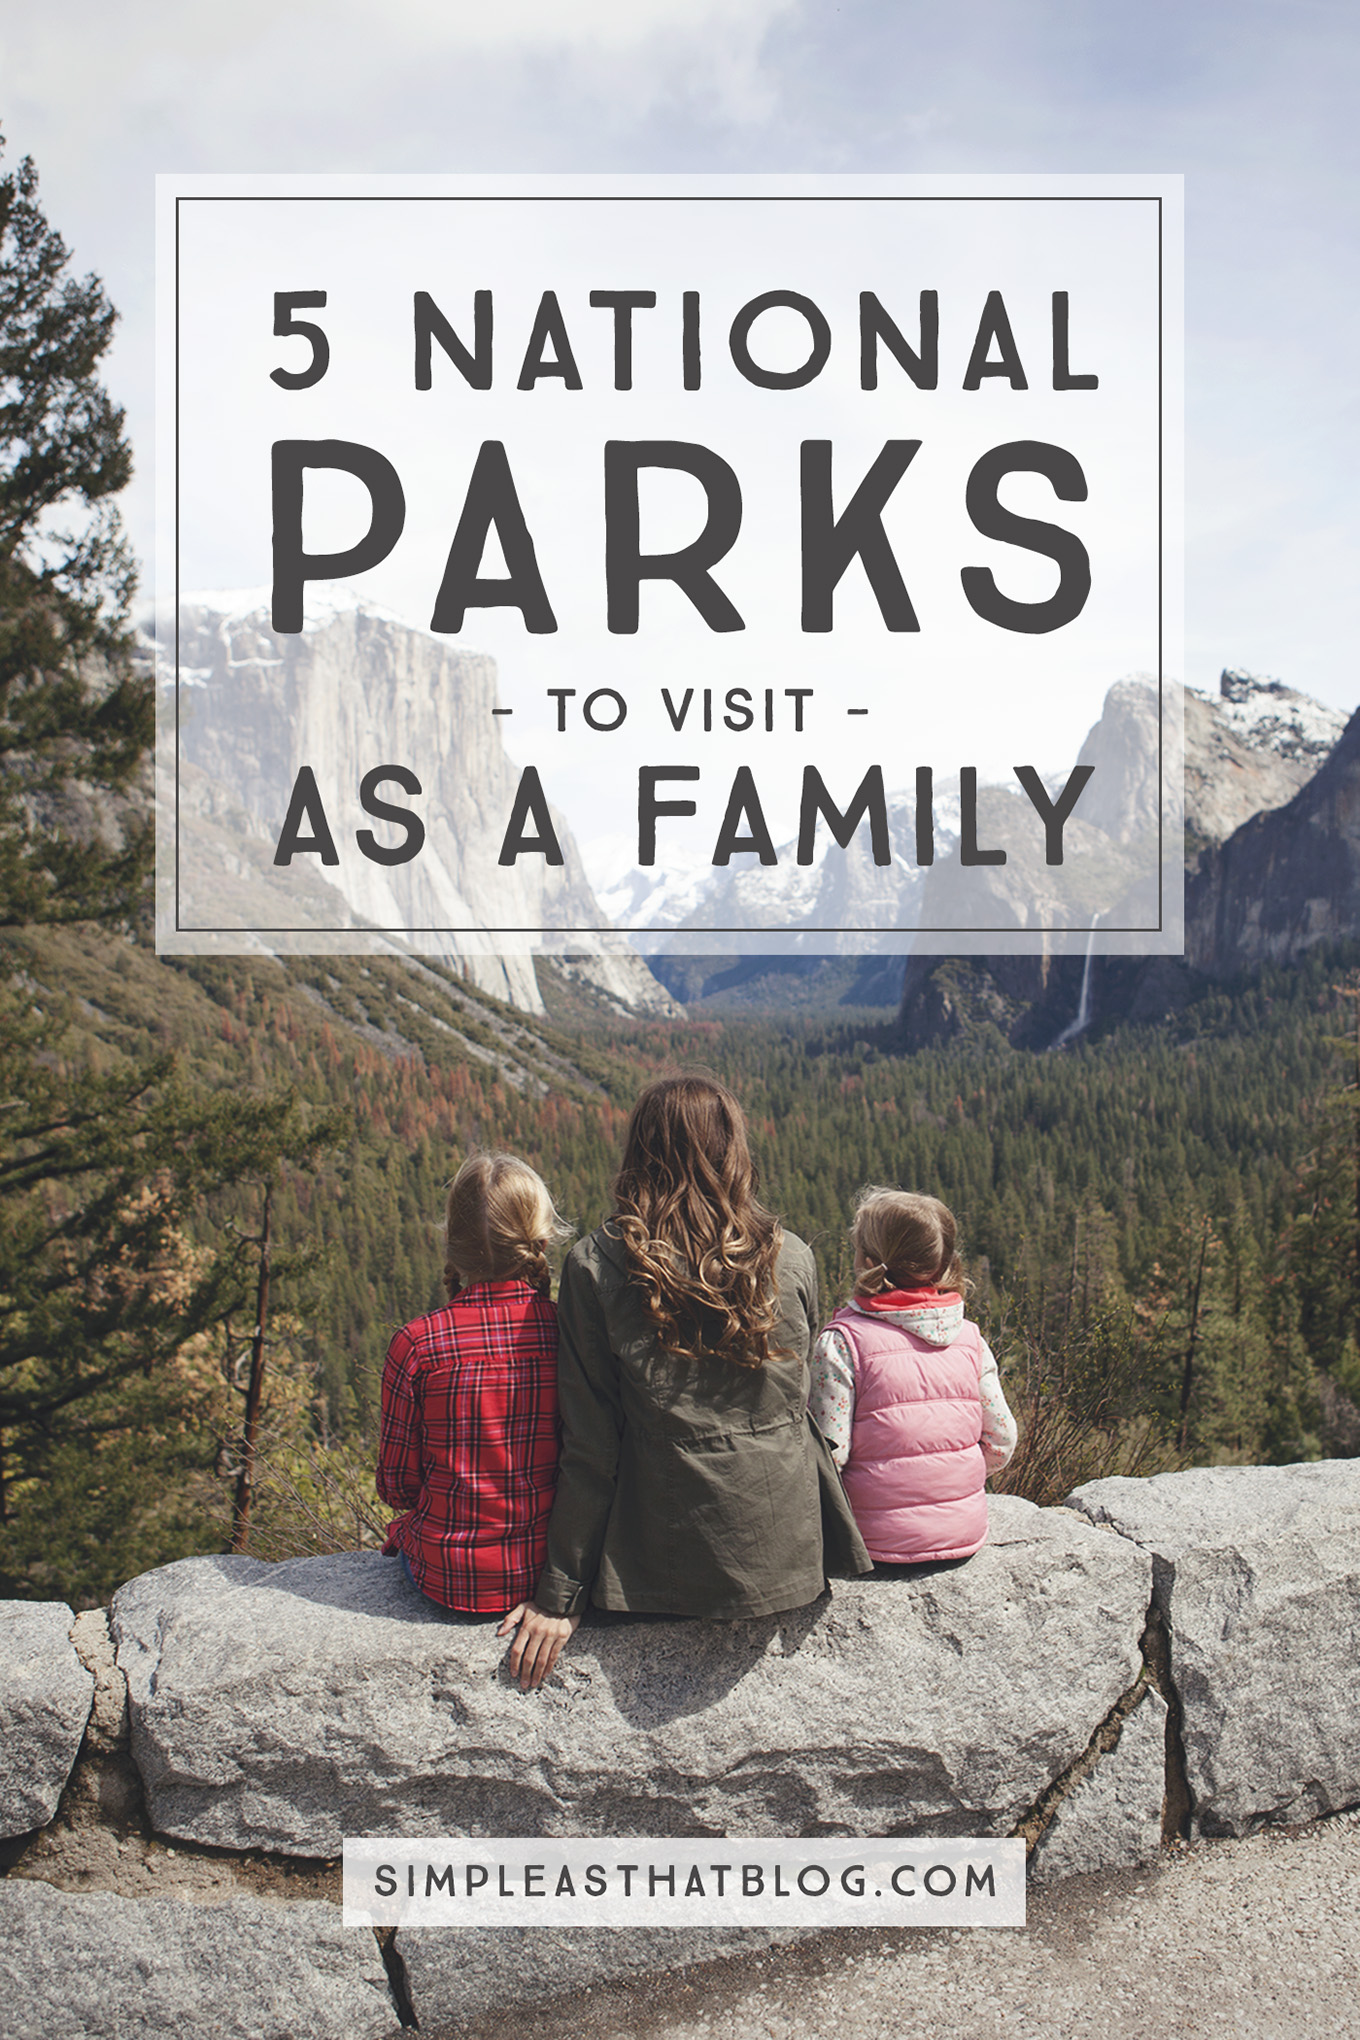 Make memories you'll treasure and to deepen those family bonds in the great outdoors!